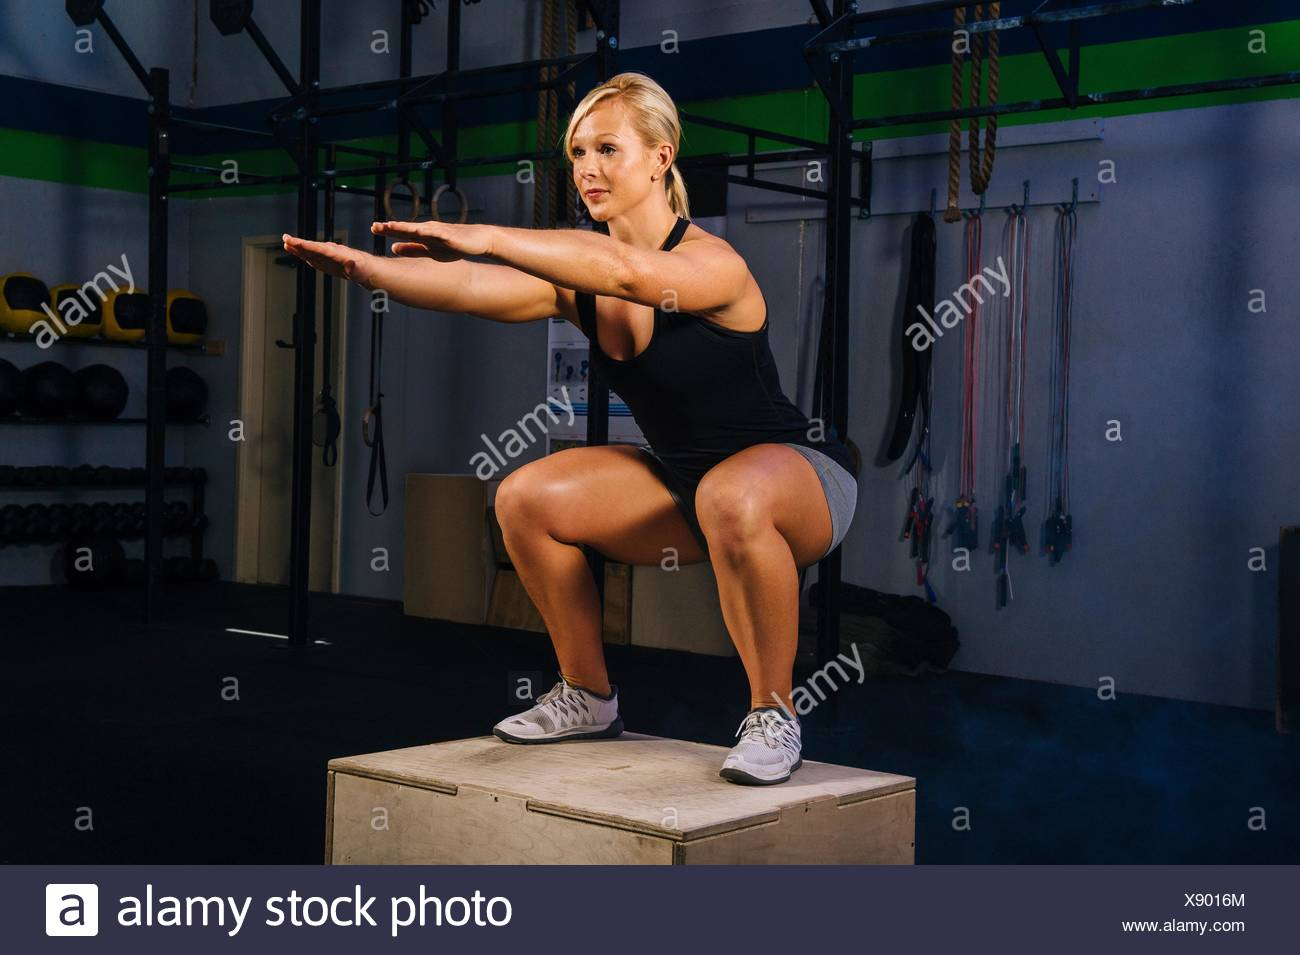 Young woman squatting on gym box with arms reaching out - Stock Image